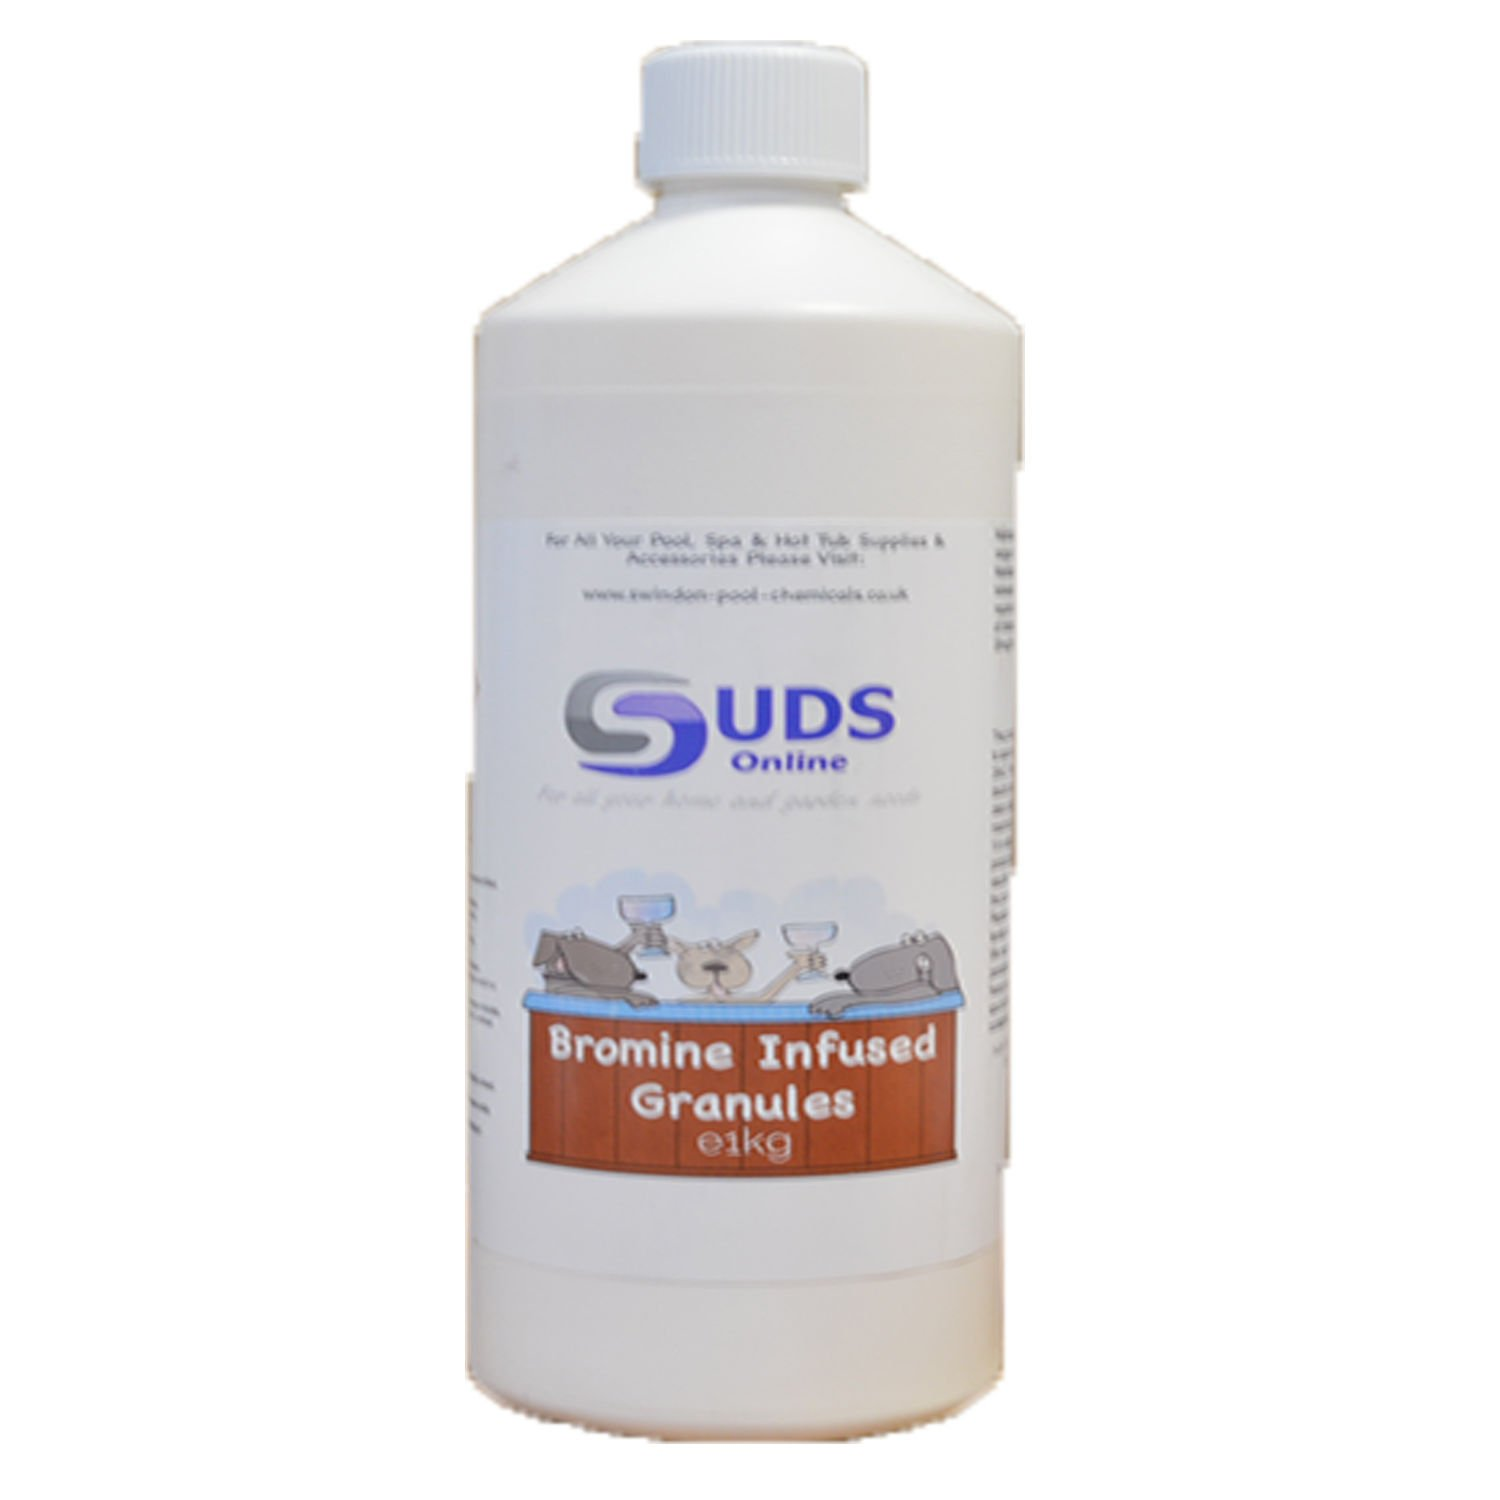 SUDS-ONLINE 1KG Bromine Infused Granules for Hot Tub Spa Swimming Pool Chemicals